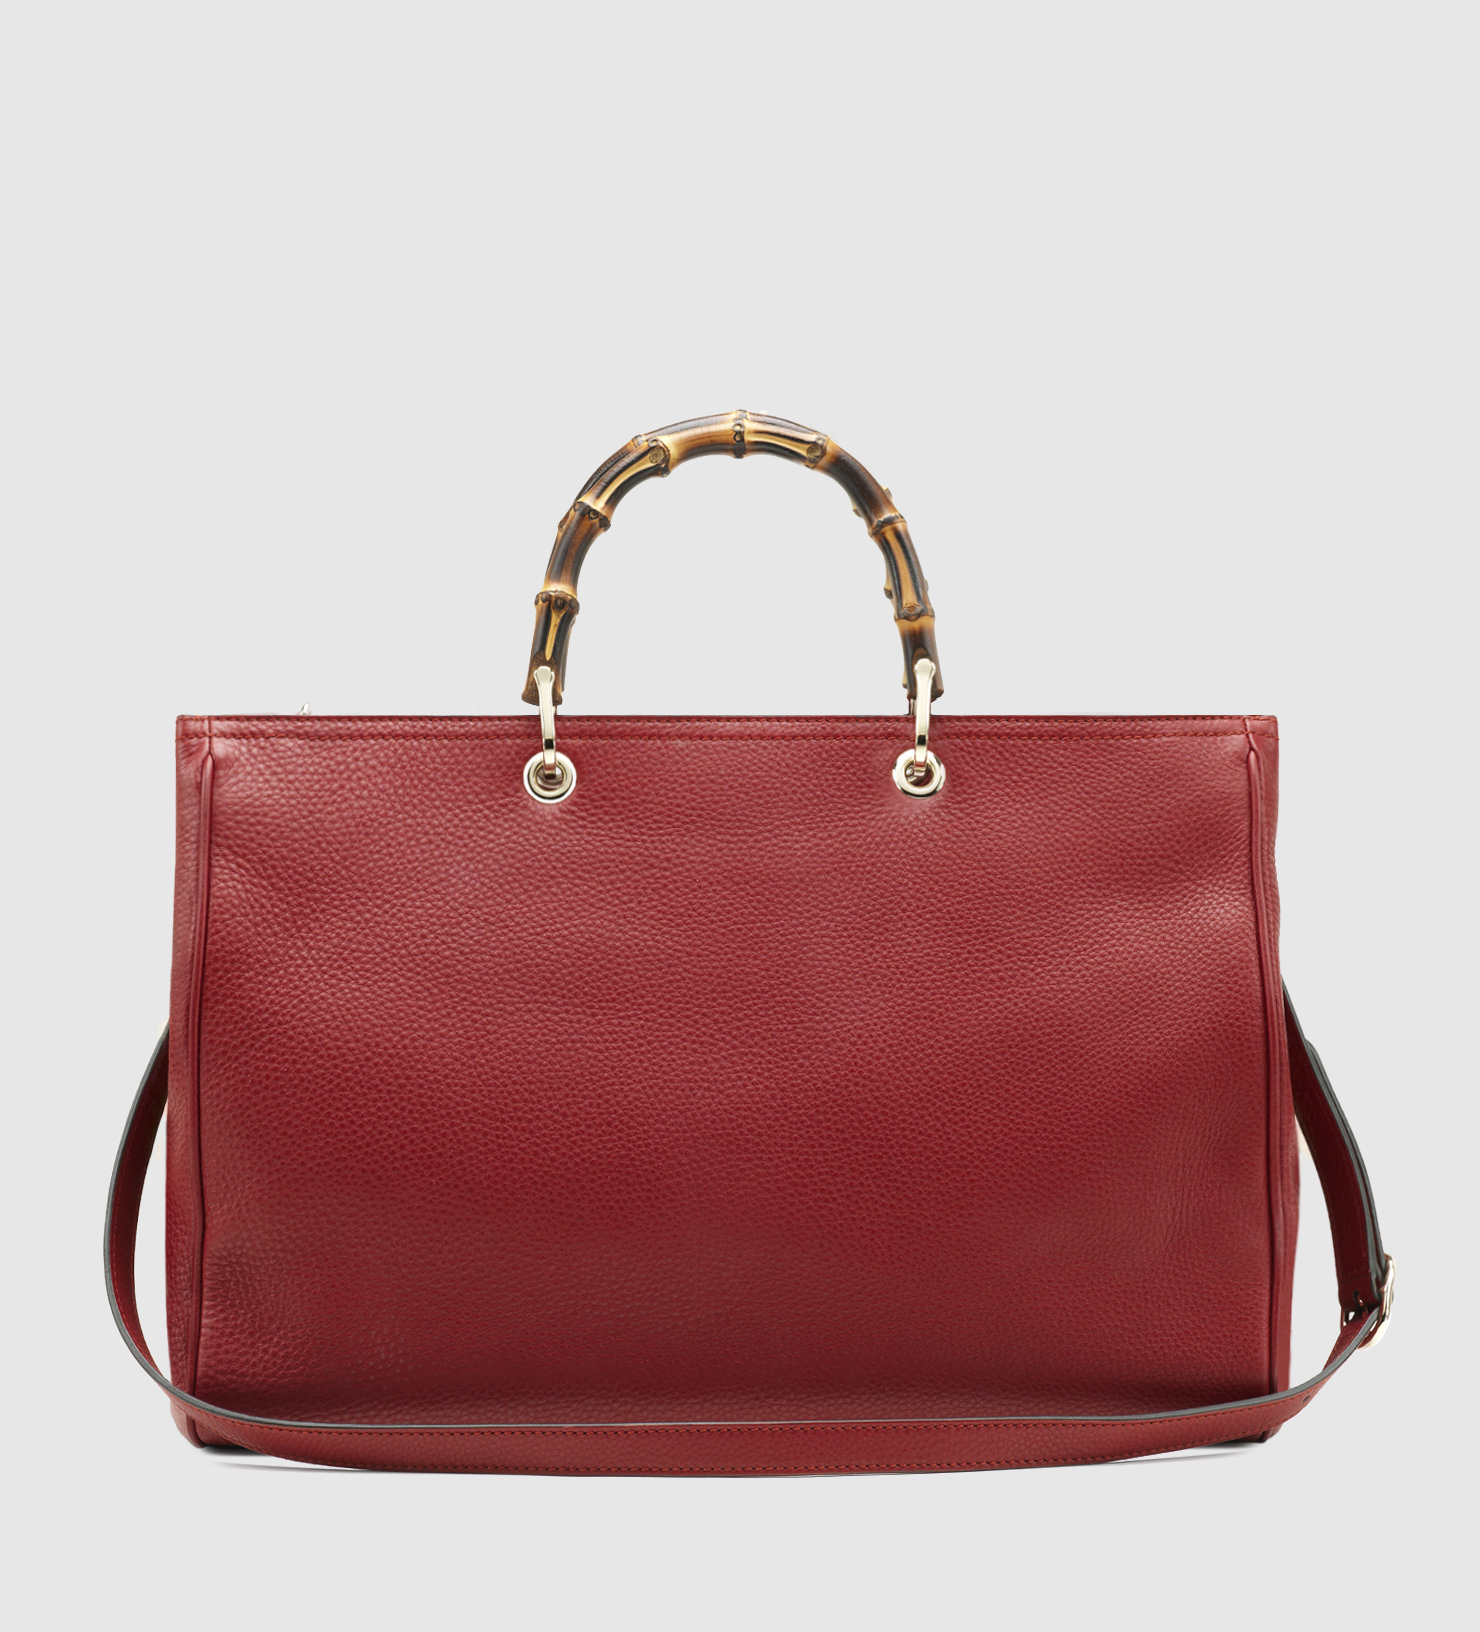 gucci bamboo shopper leather tote in red lyst. Black Bedroom Furniture Sets. Home Design Ideas